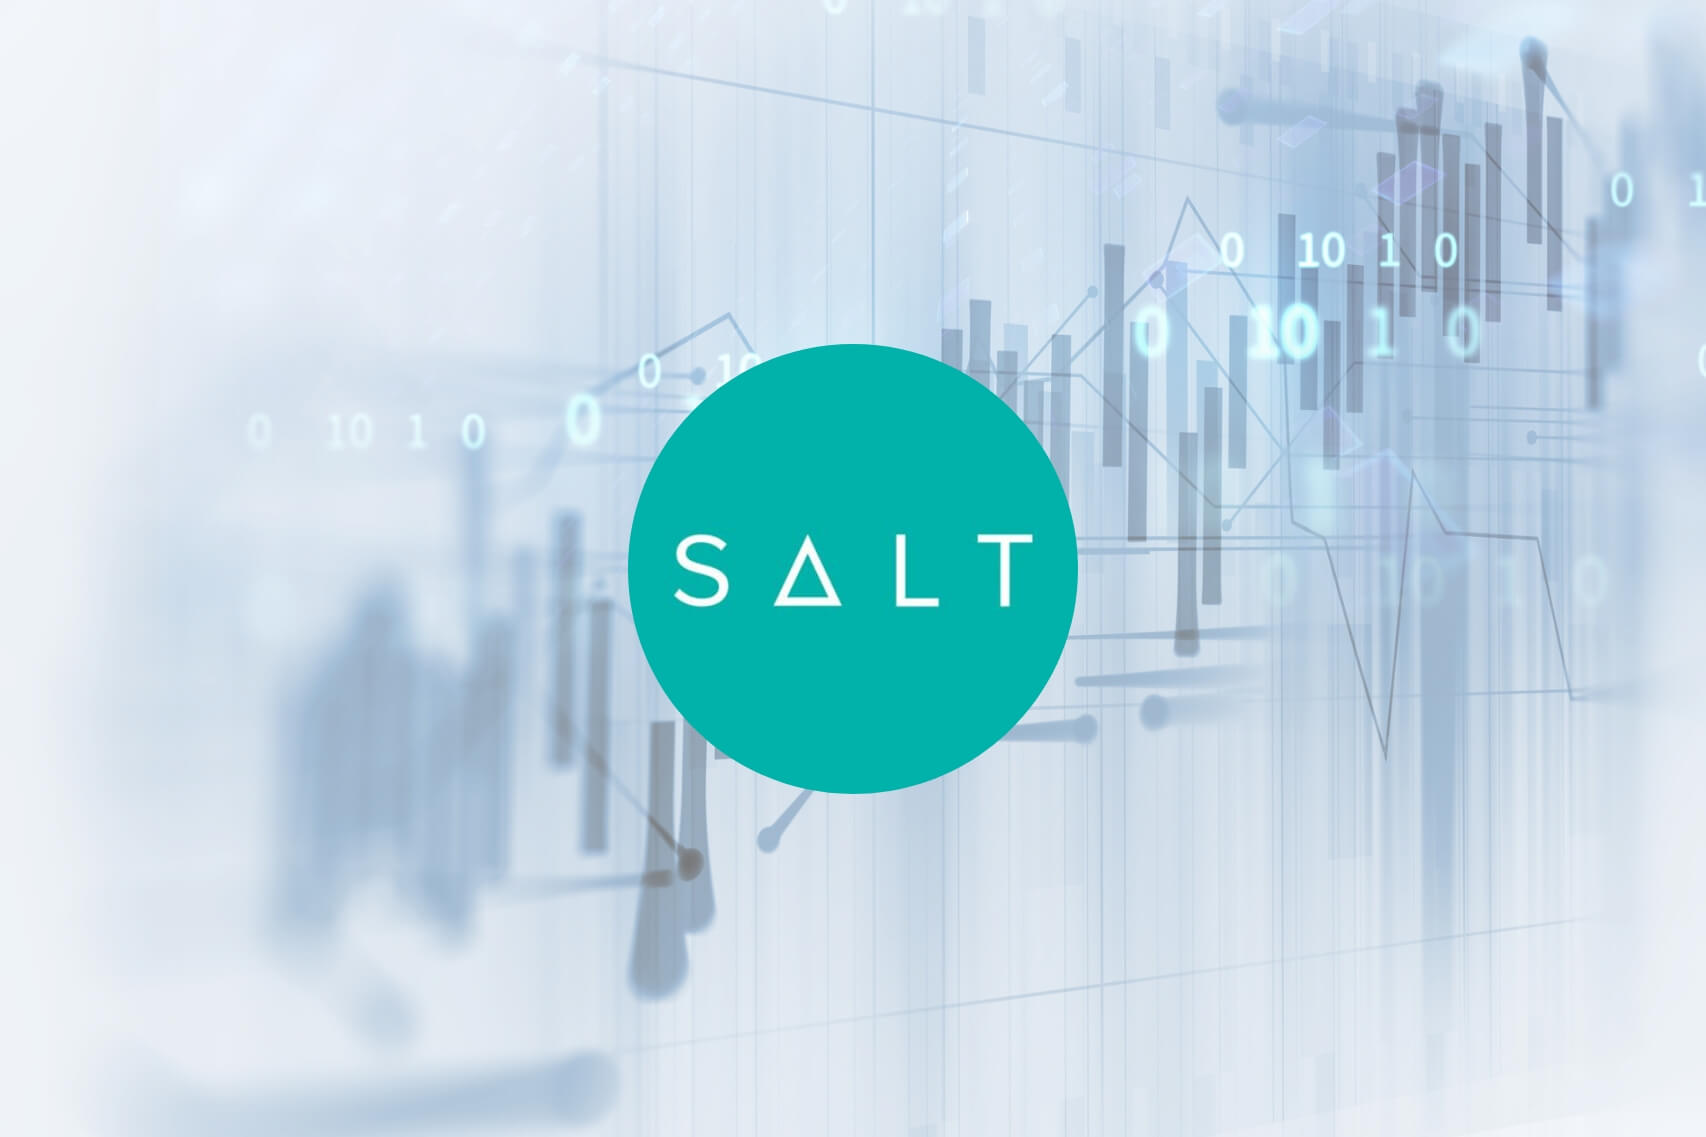 SALT Price Analysis